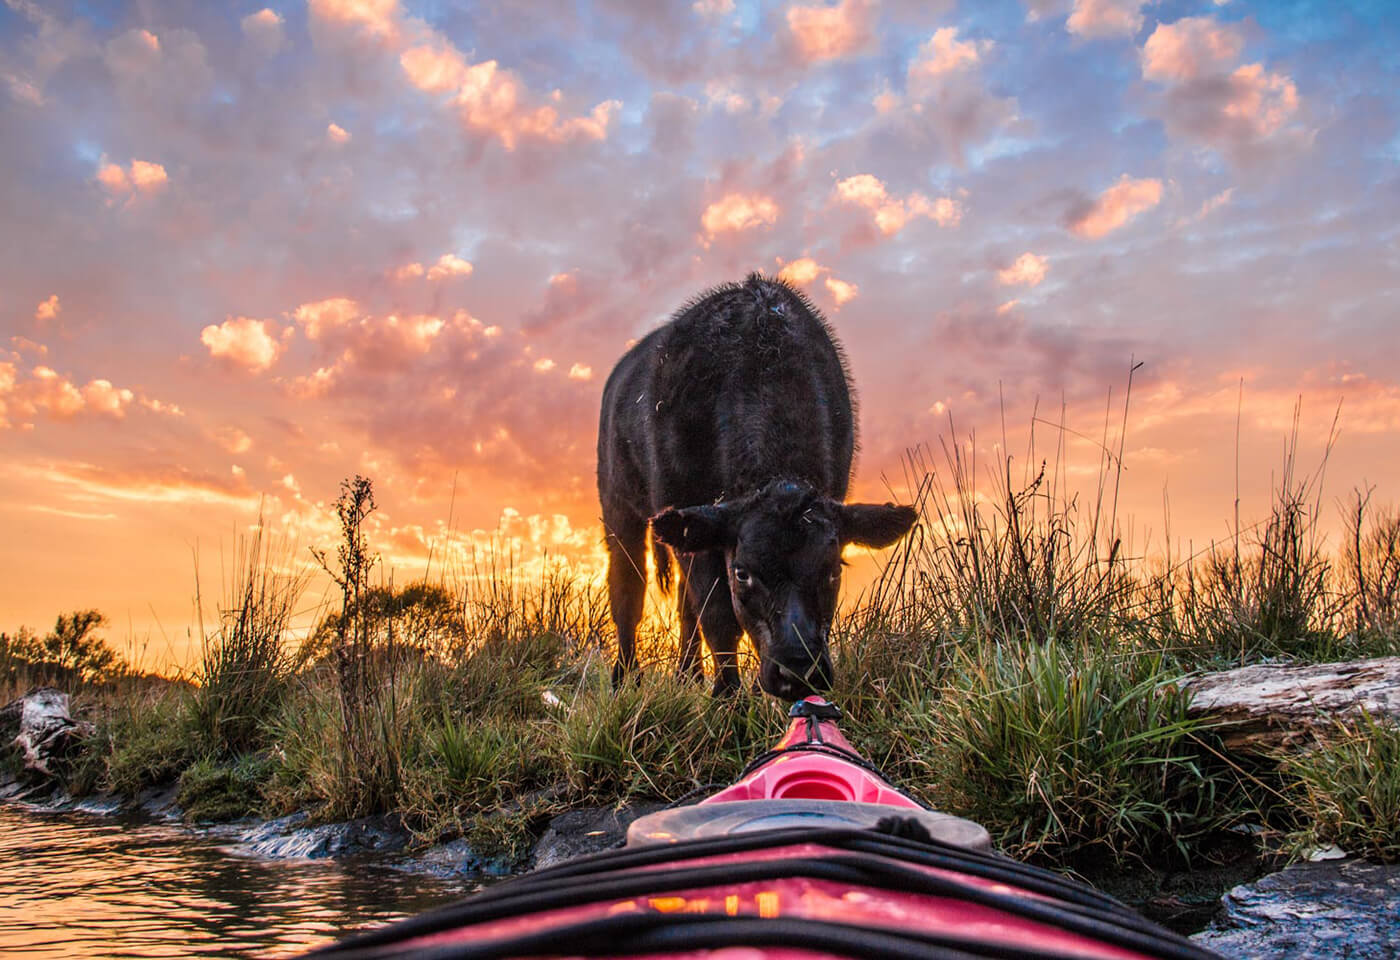 Cow sniffing front nose of a kayak